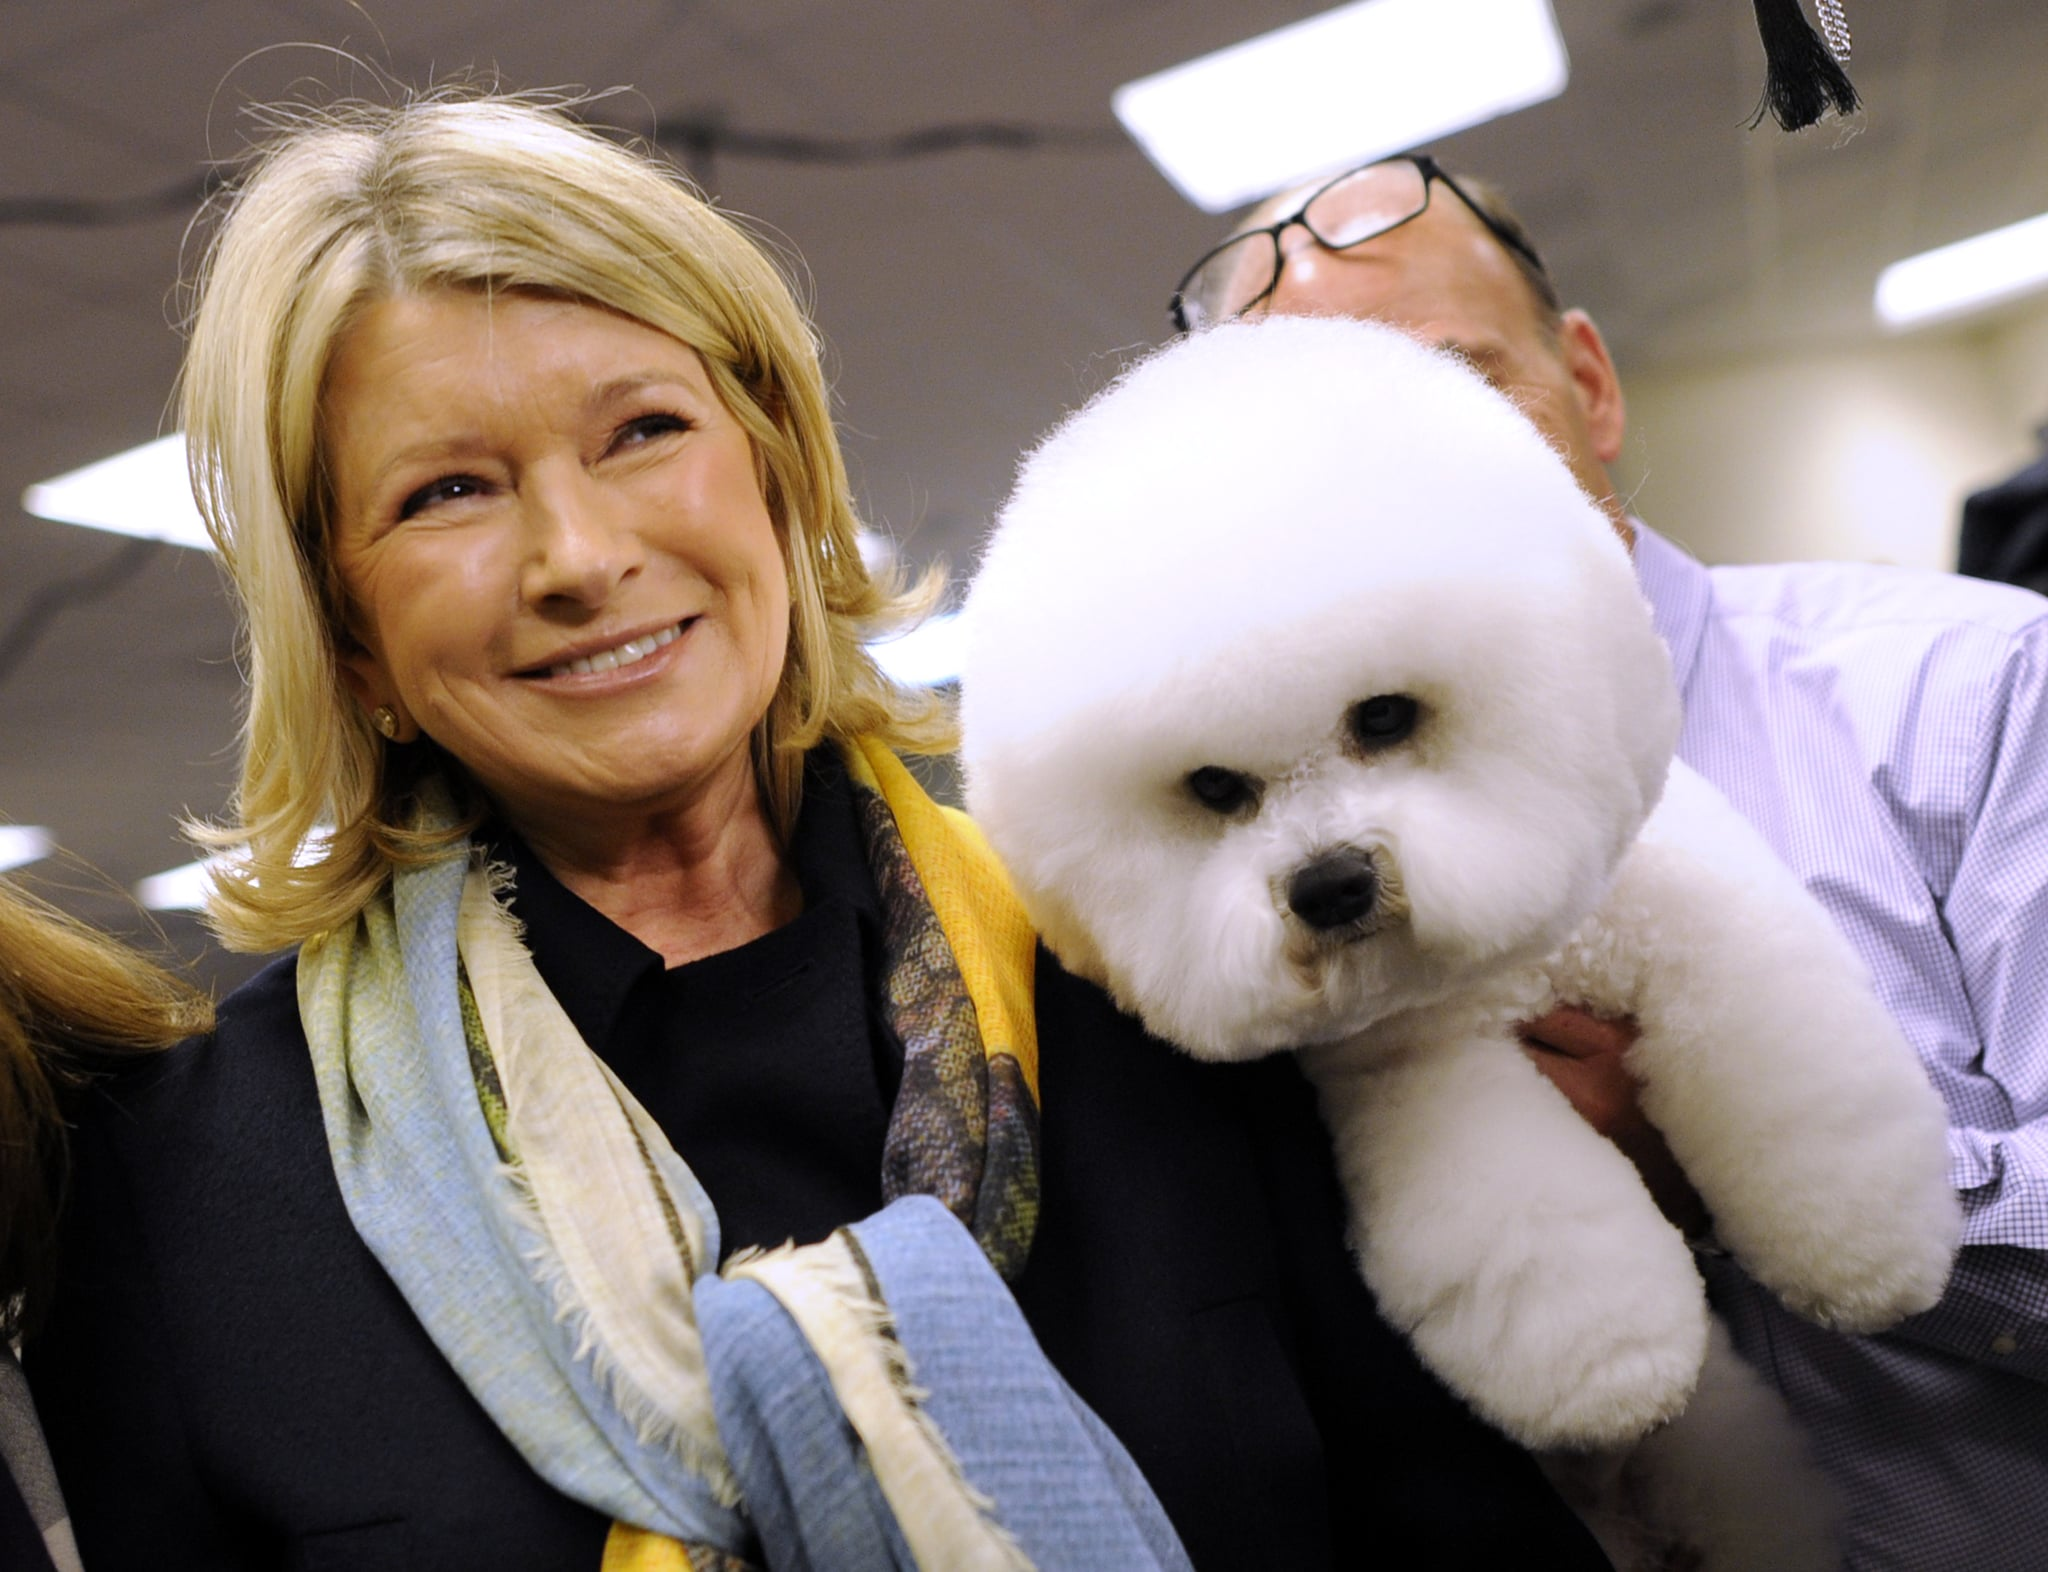 Martha Stewart stops to look at a Bichon Frises in the staging area during the 136th Westminster Kennel Club  Annual Dog Show held at Madison Square Garden. February 13, 2012.  AFP PHOTO / TIMOTHY A. CLARY (Photo credit should read TIMOTHY A. CLARY/AFP/Getty Images)